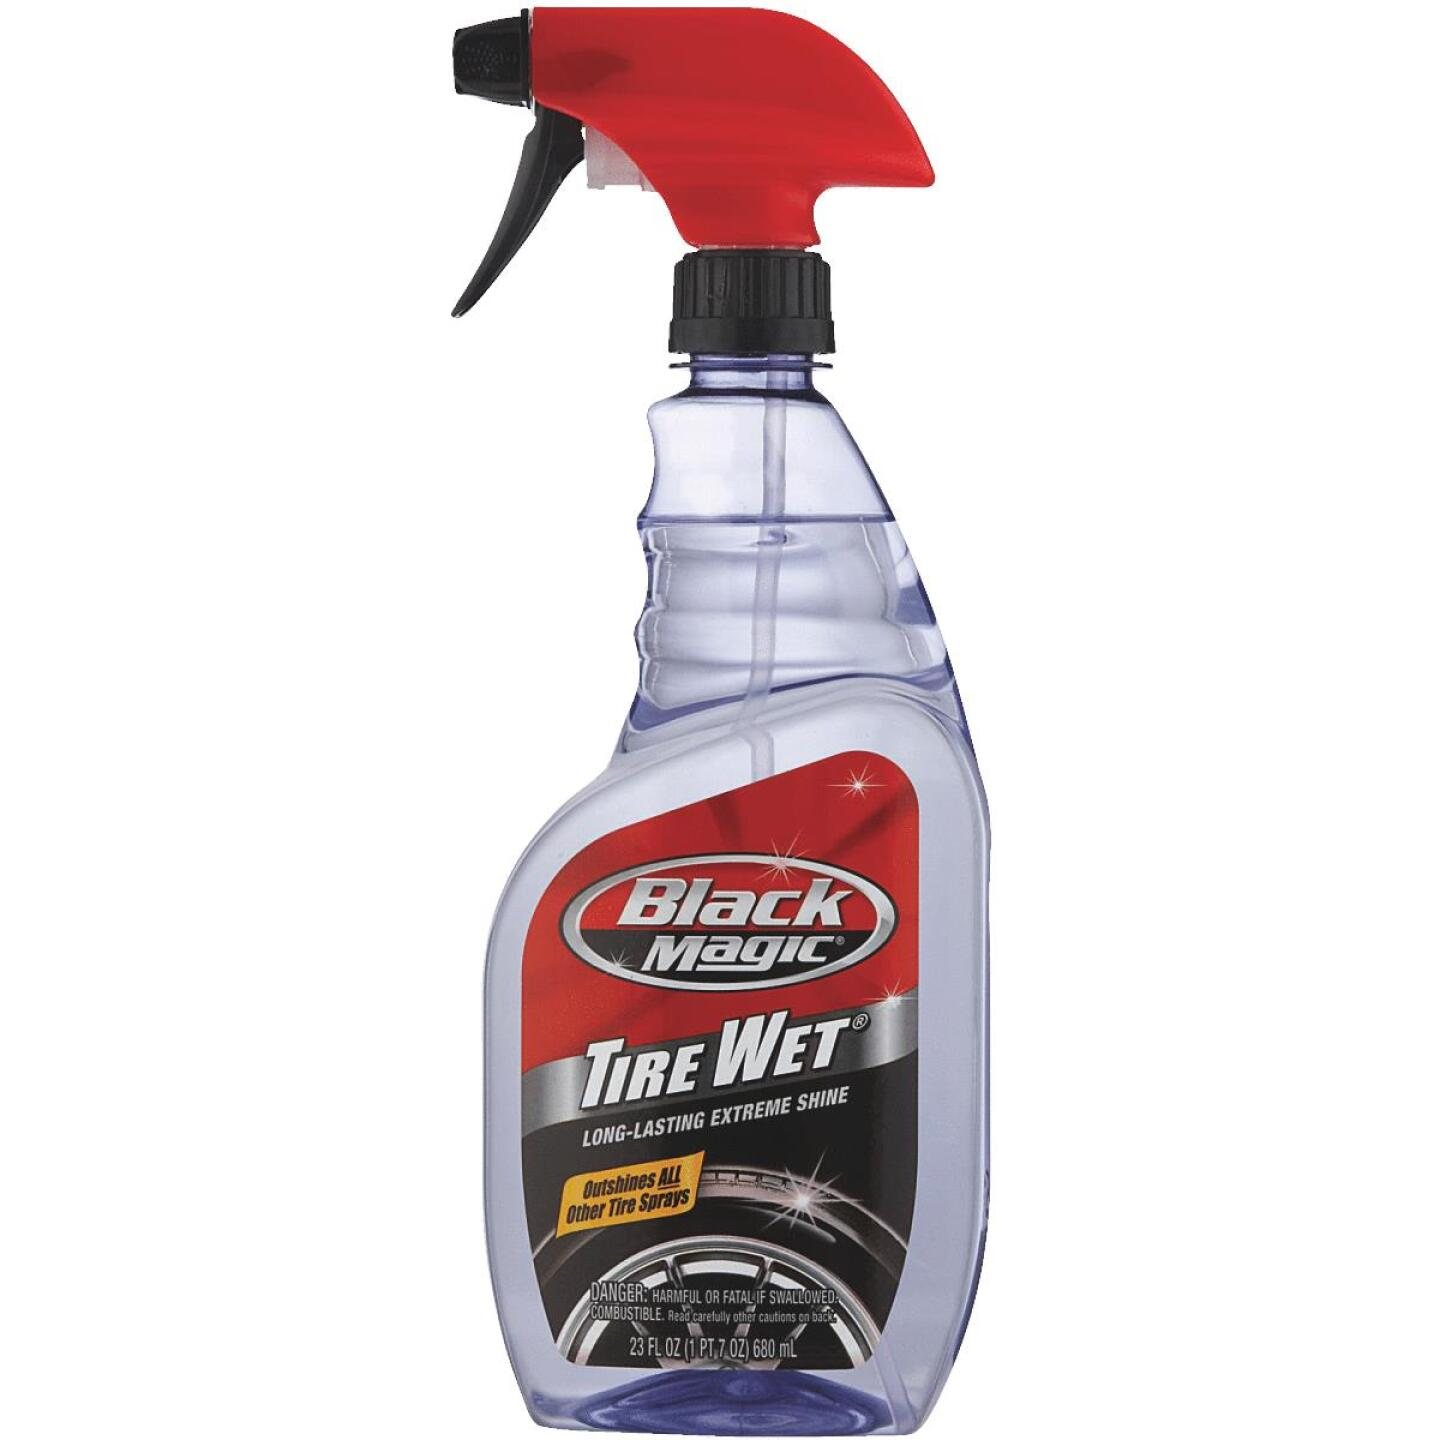 Black Magic 23 Oz. Trigger Spray Tire Cleaner Image 1